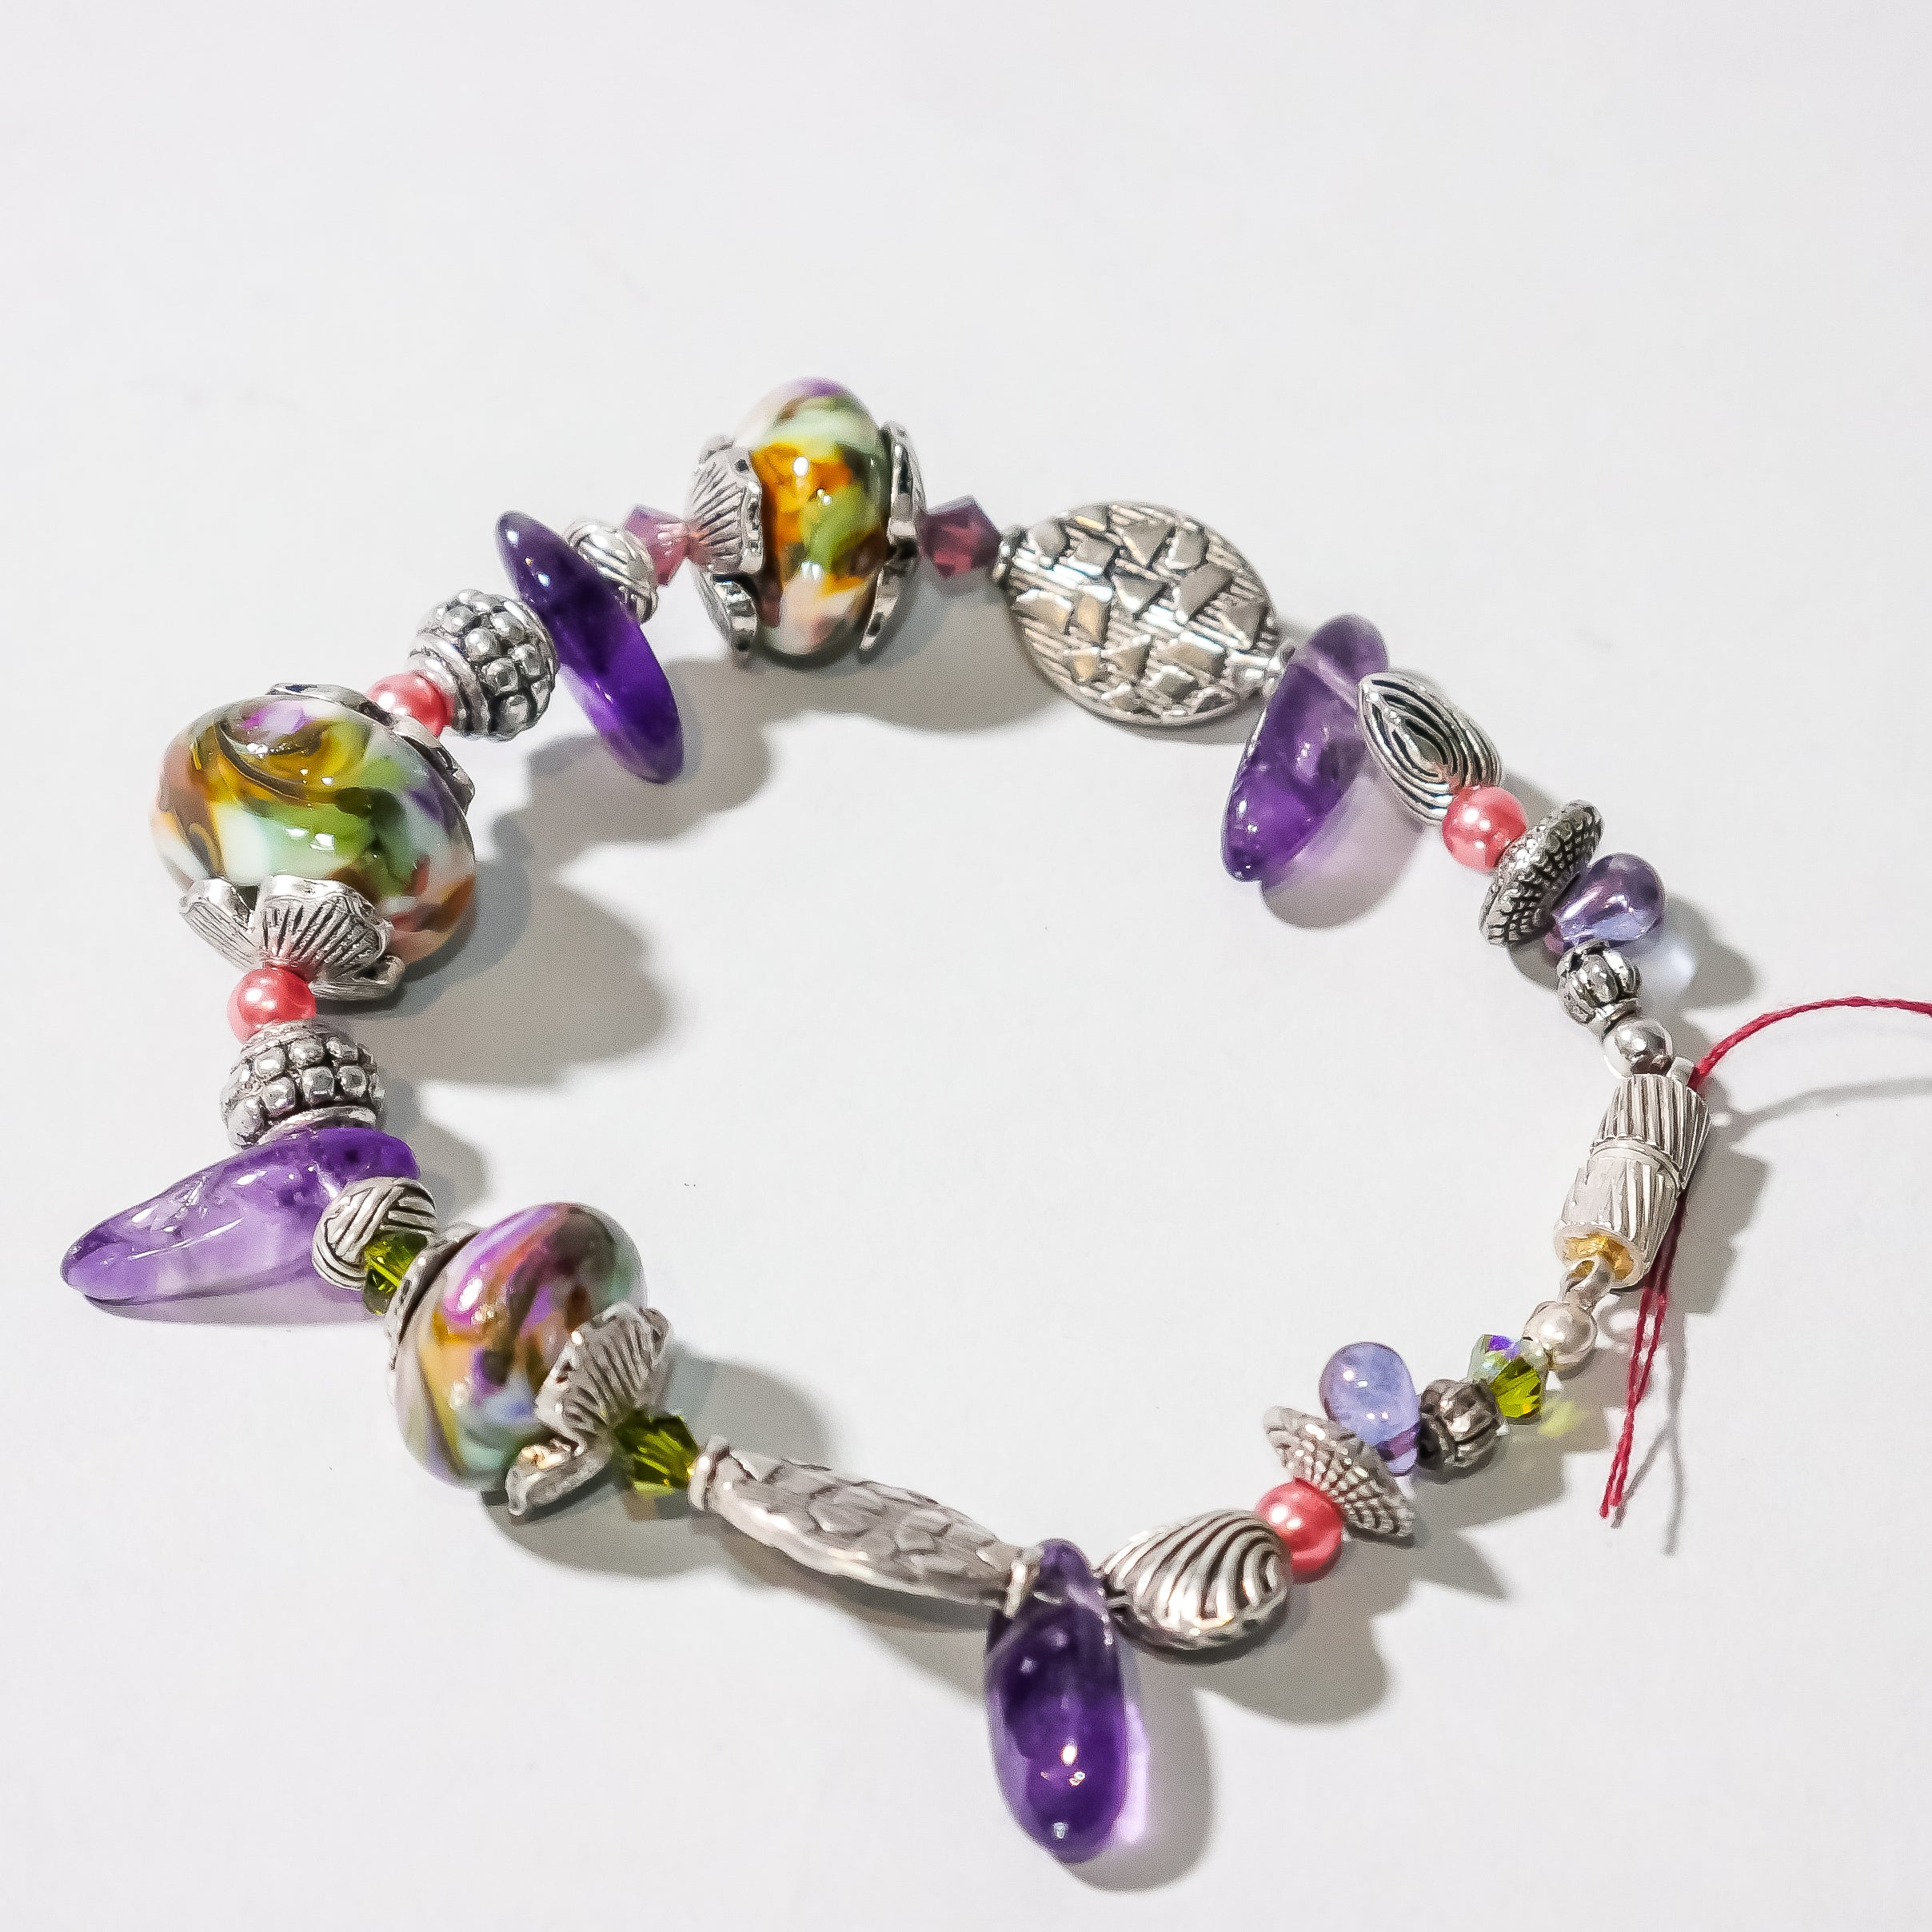 Charm Bracelet made with love by local artist Lee Mannikko